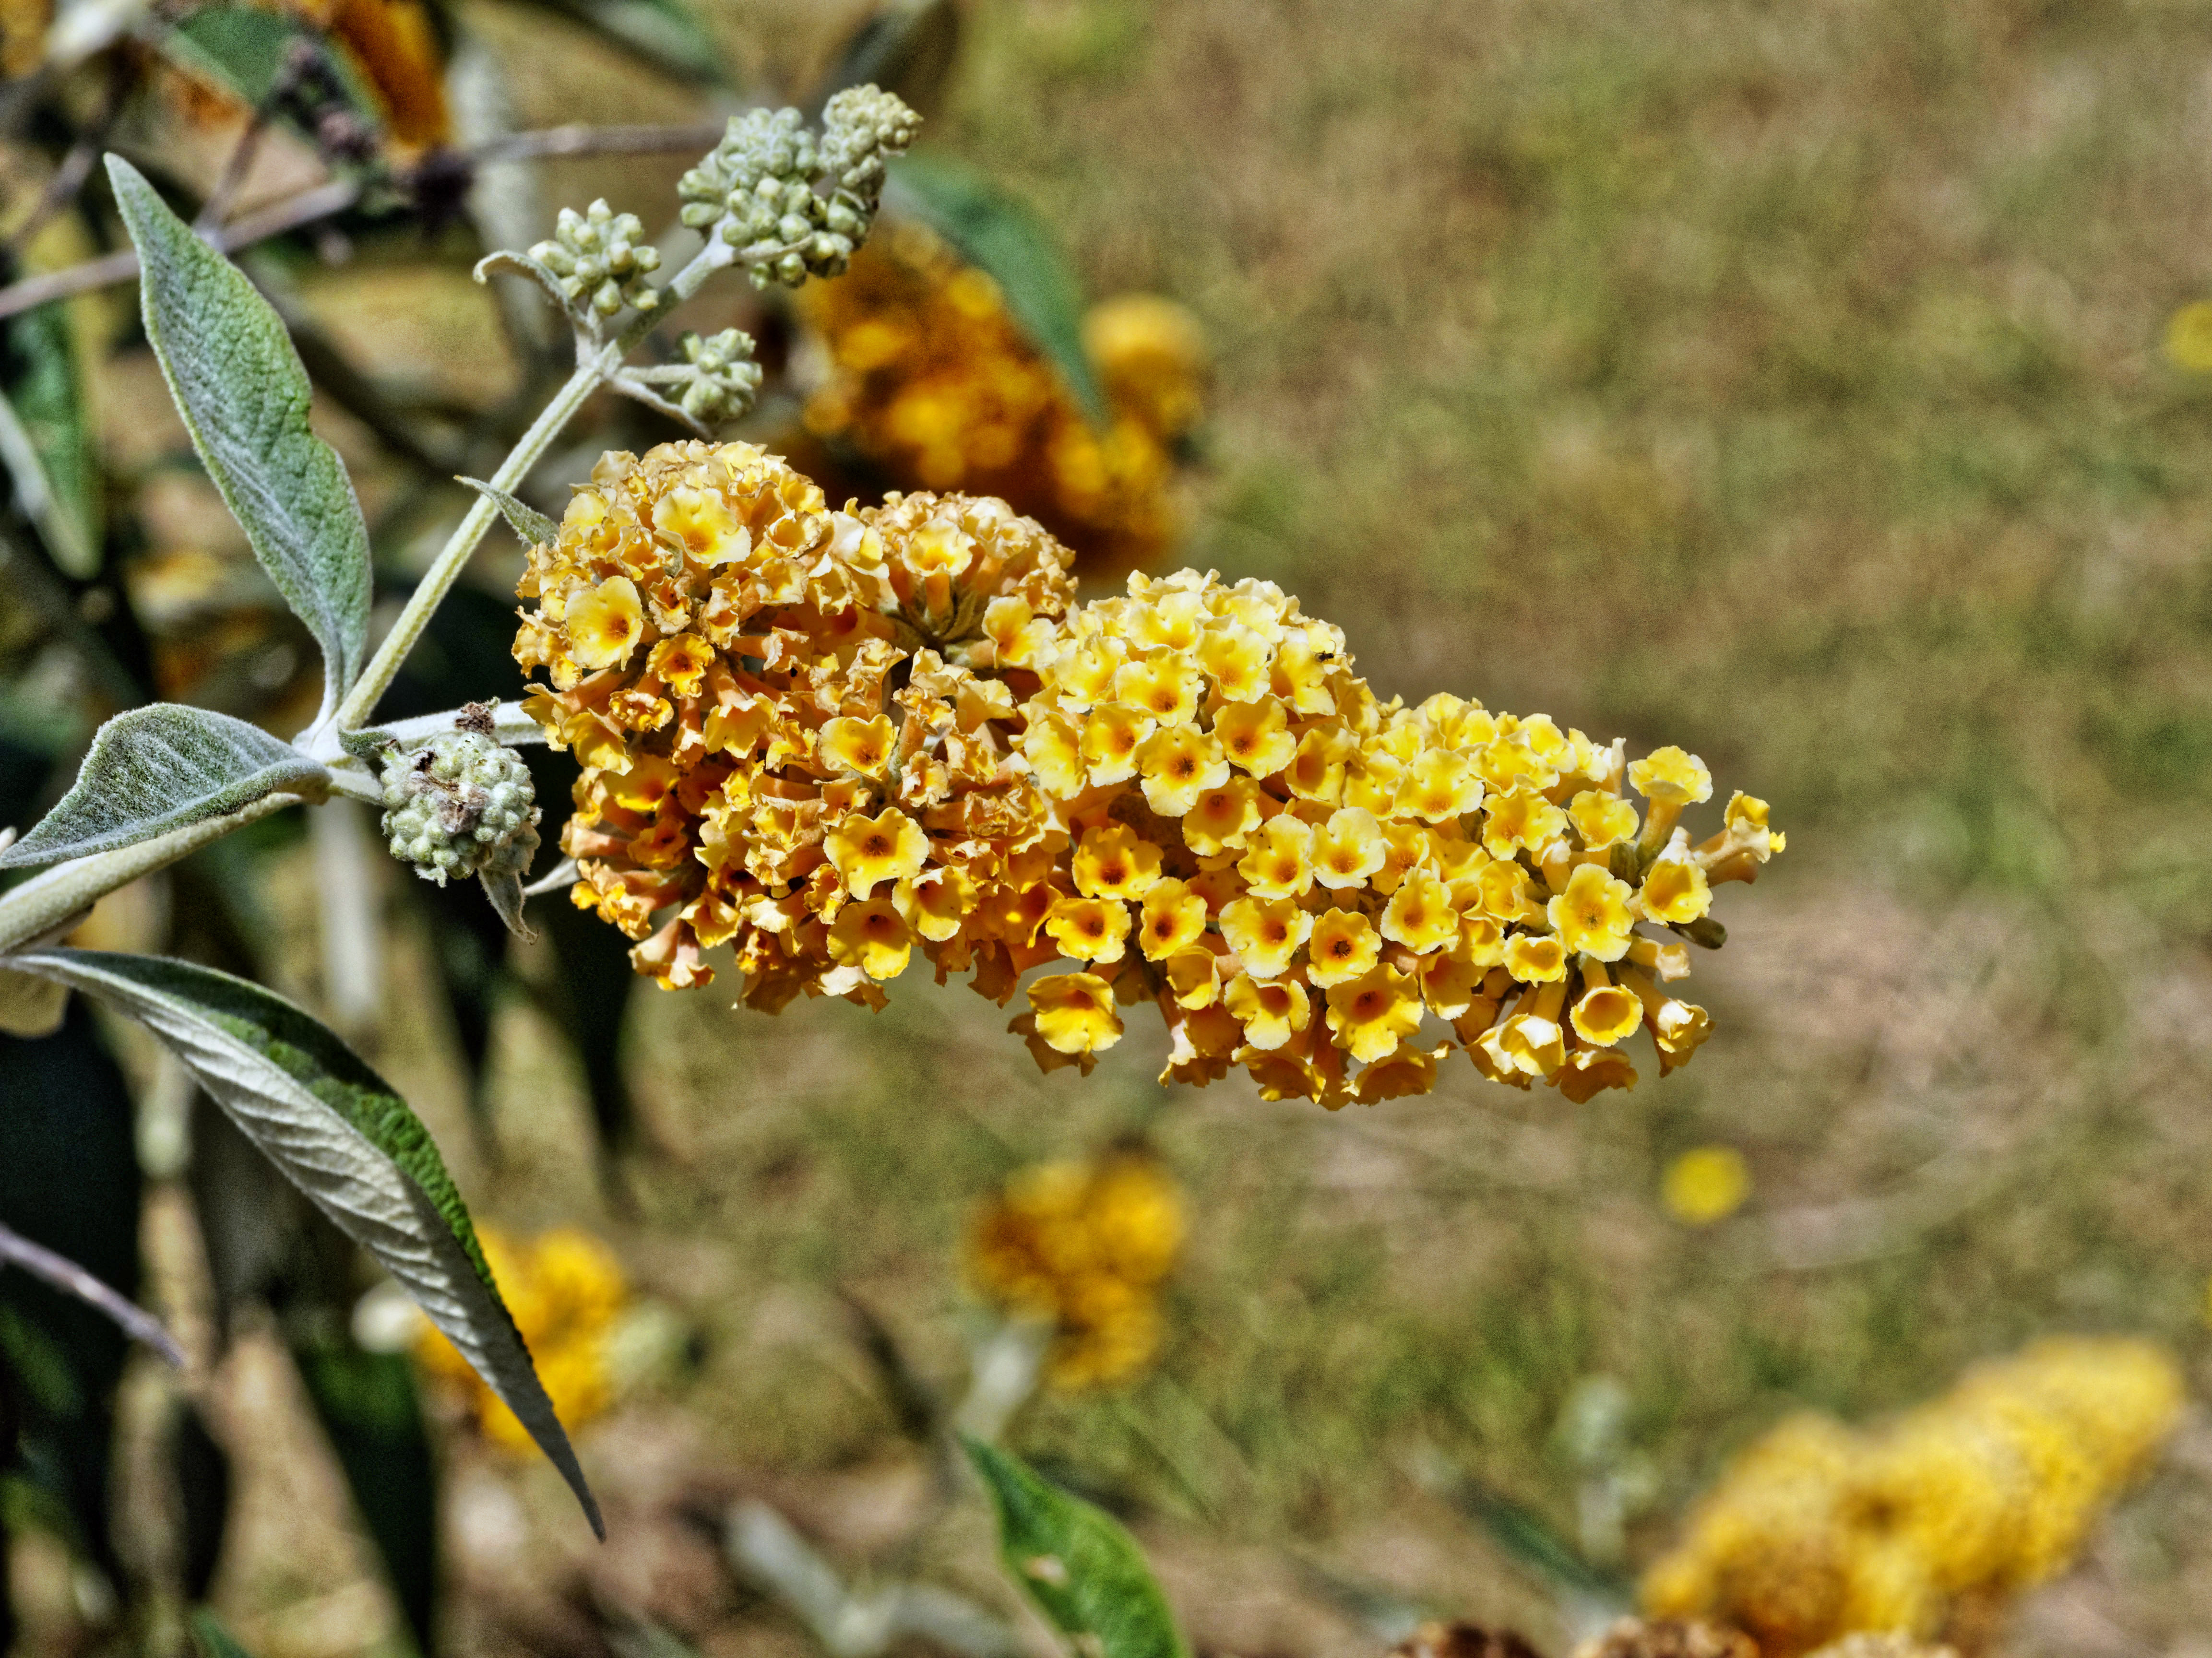 This should be Buddleja-3.jpeg.  Is it missing?